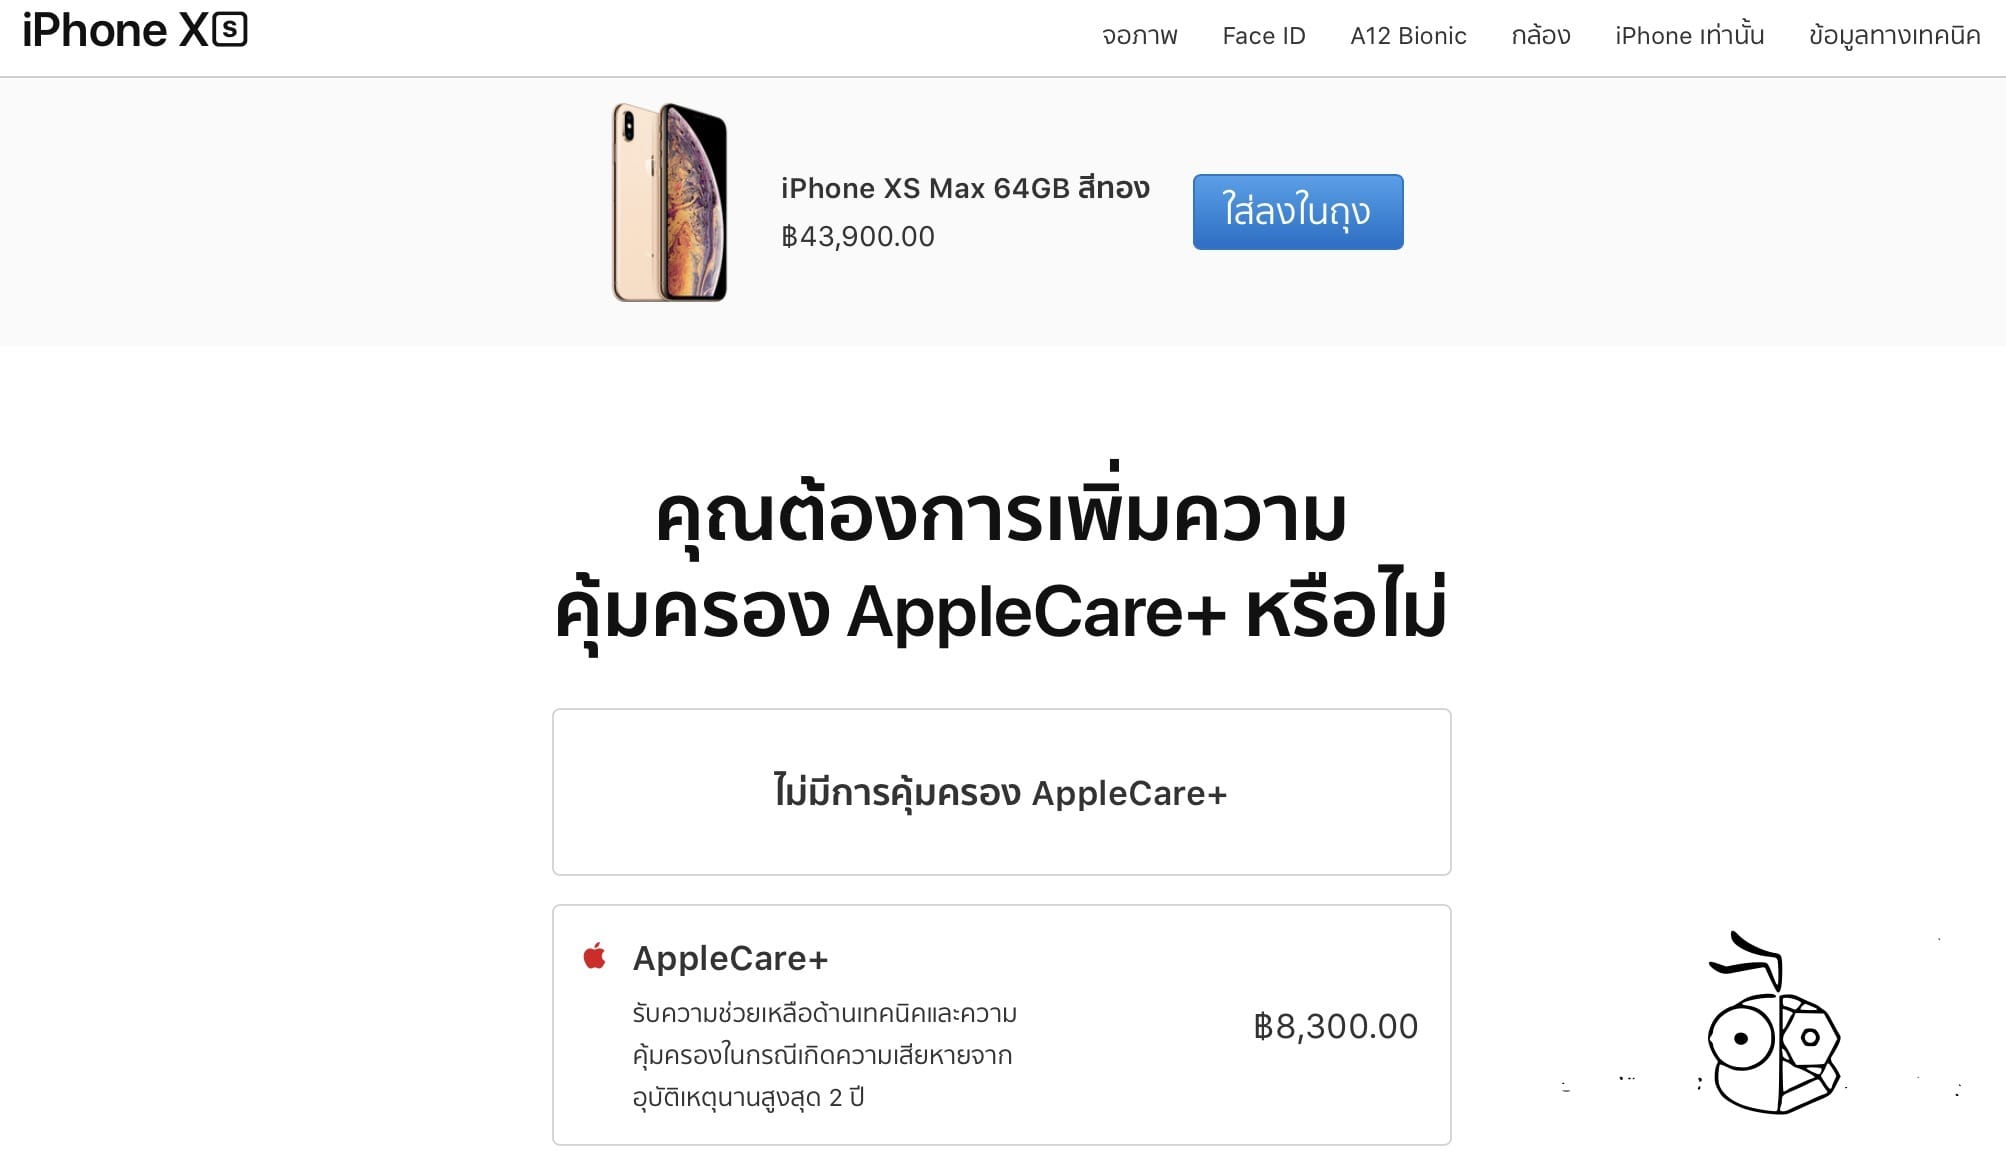 Applecare Iphone Xs Thai